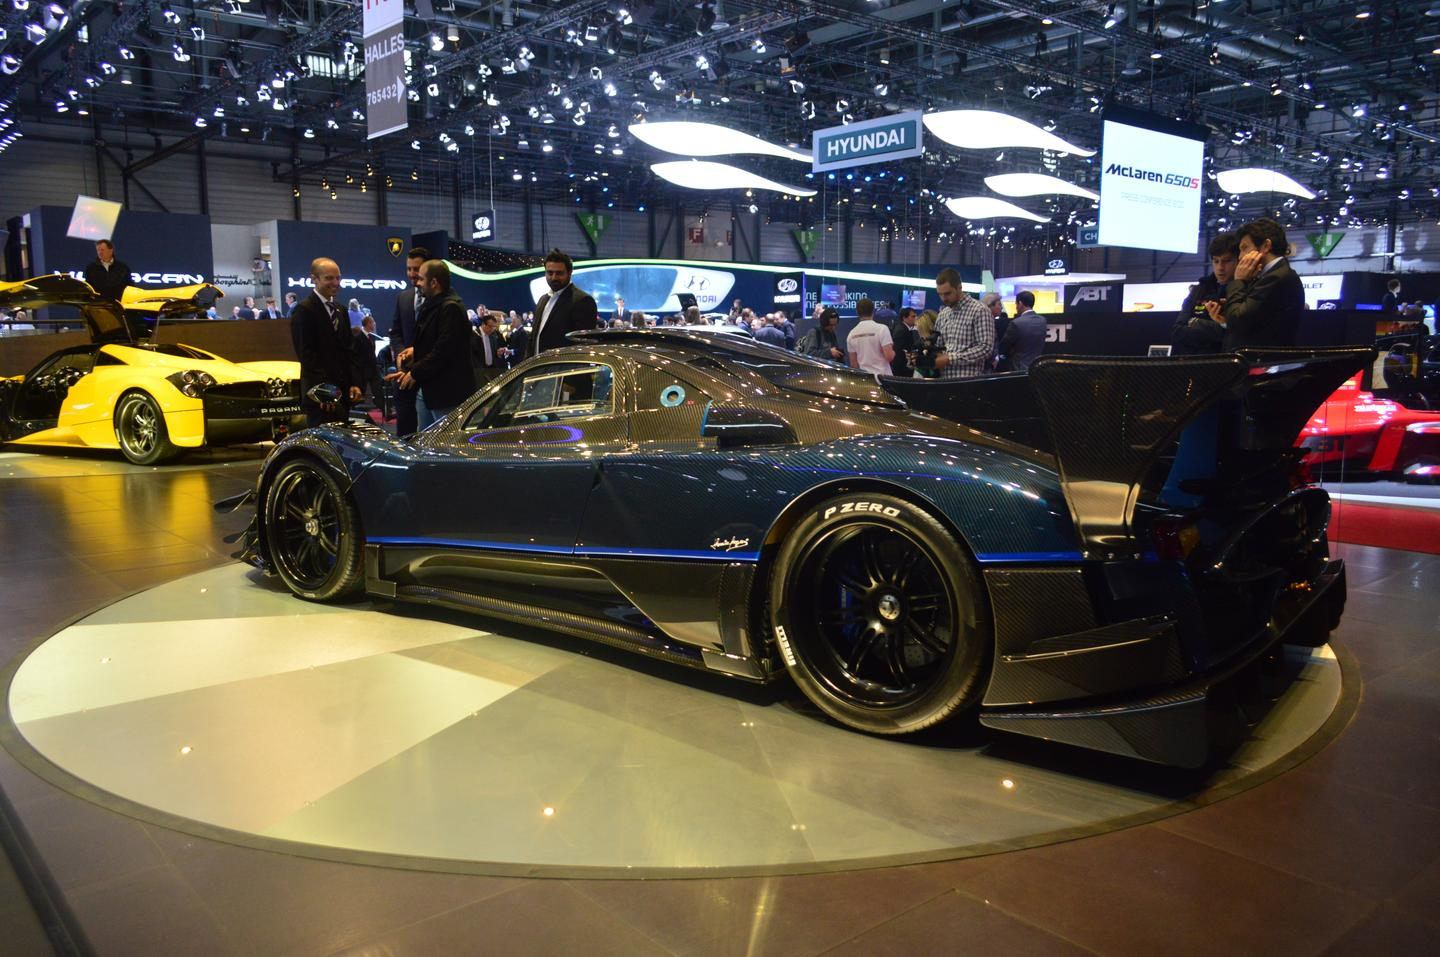 The limited edition Revolucion will set you back US$3 million (Photo: CC Weiss/gizmag.com)